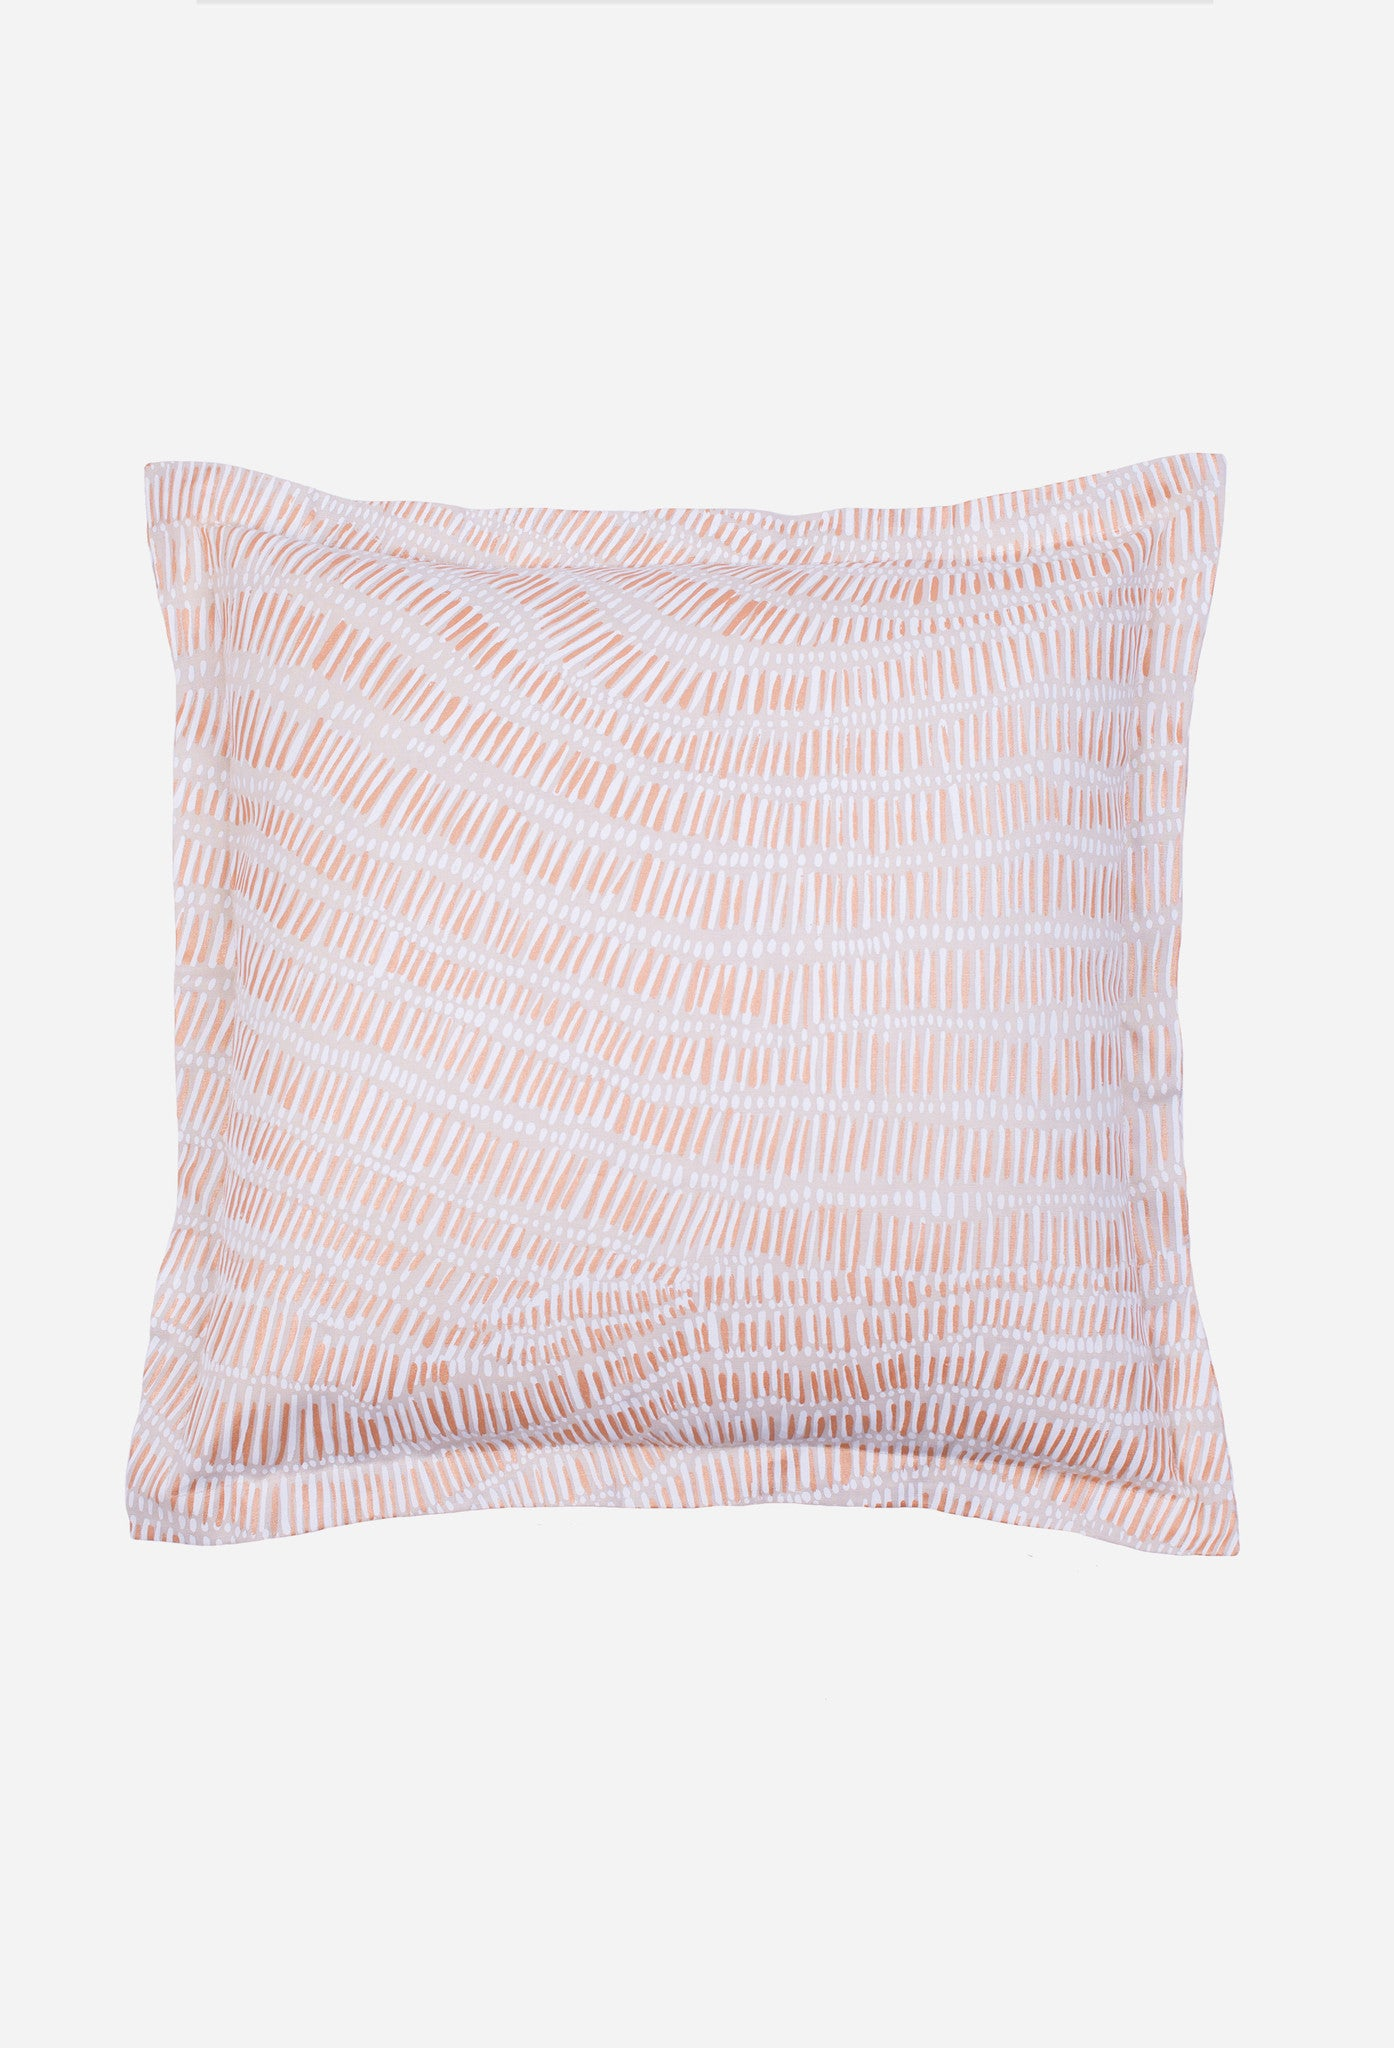 Fish Net Linen Cushion